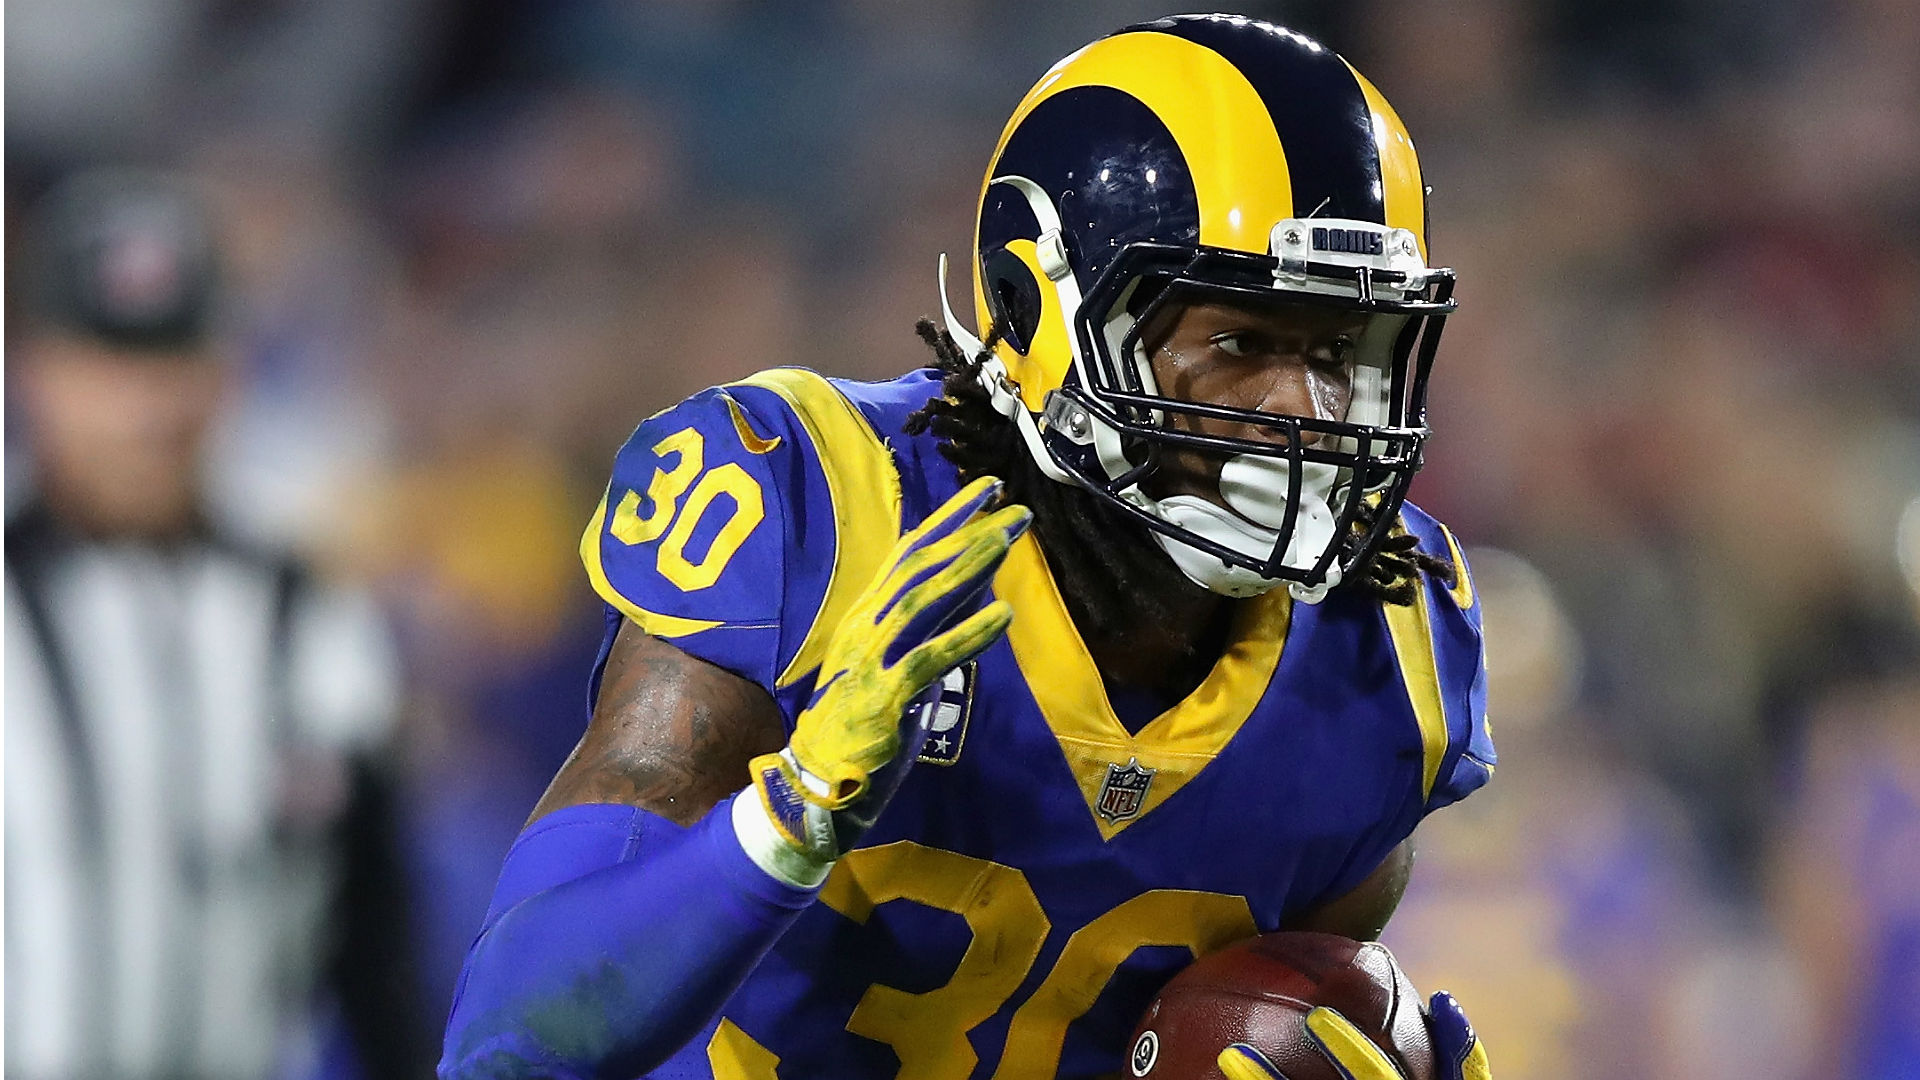 NFL wants answers from Rams on Todd Gurley's secret injury